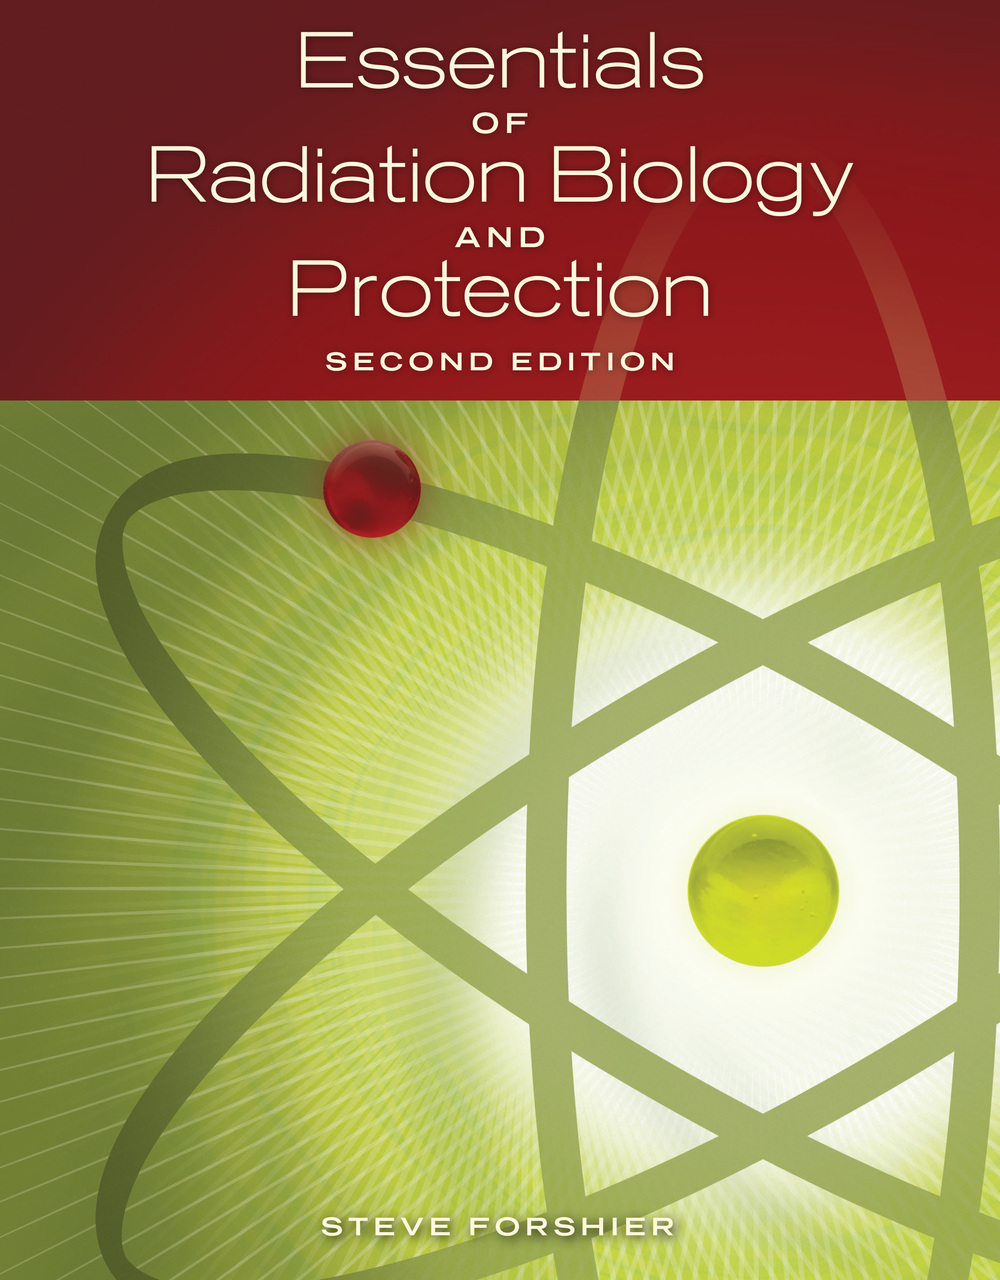 Essentials of Radiation Biology and Protection cover